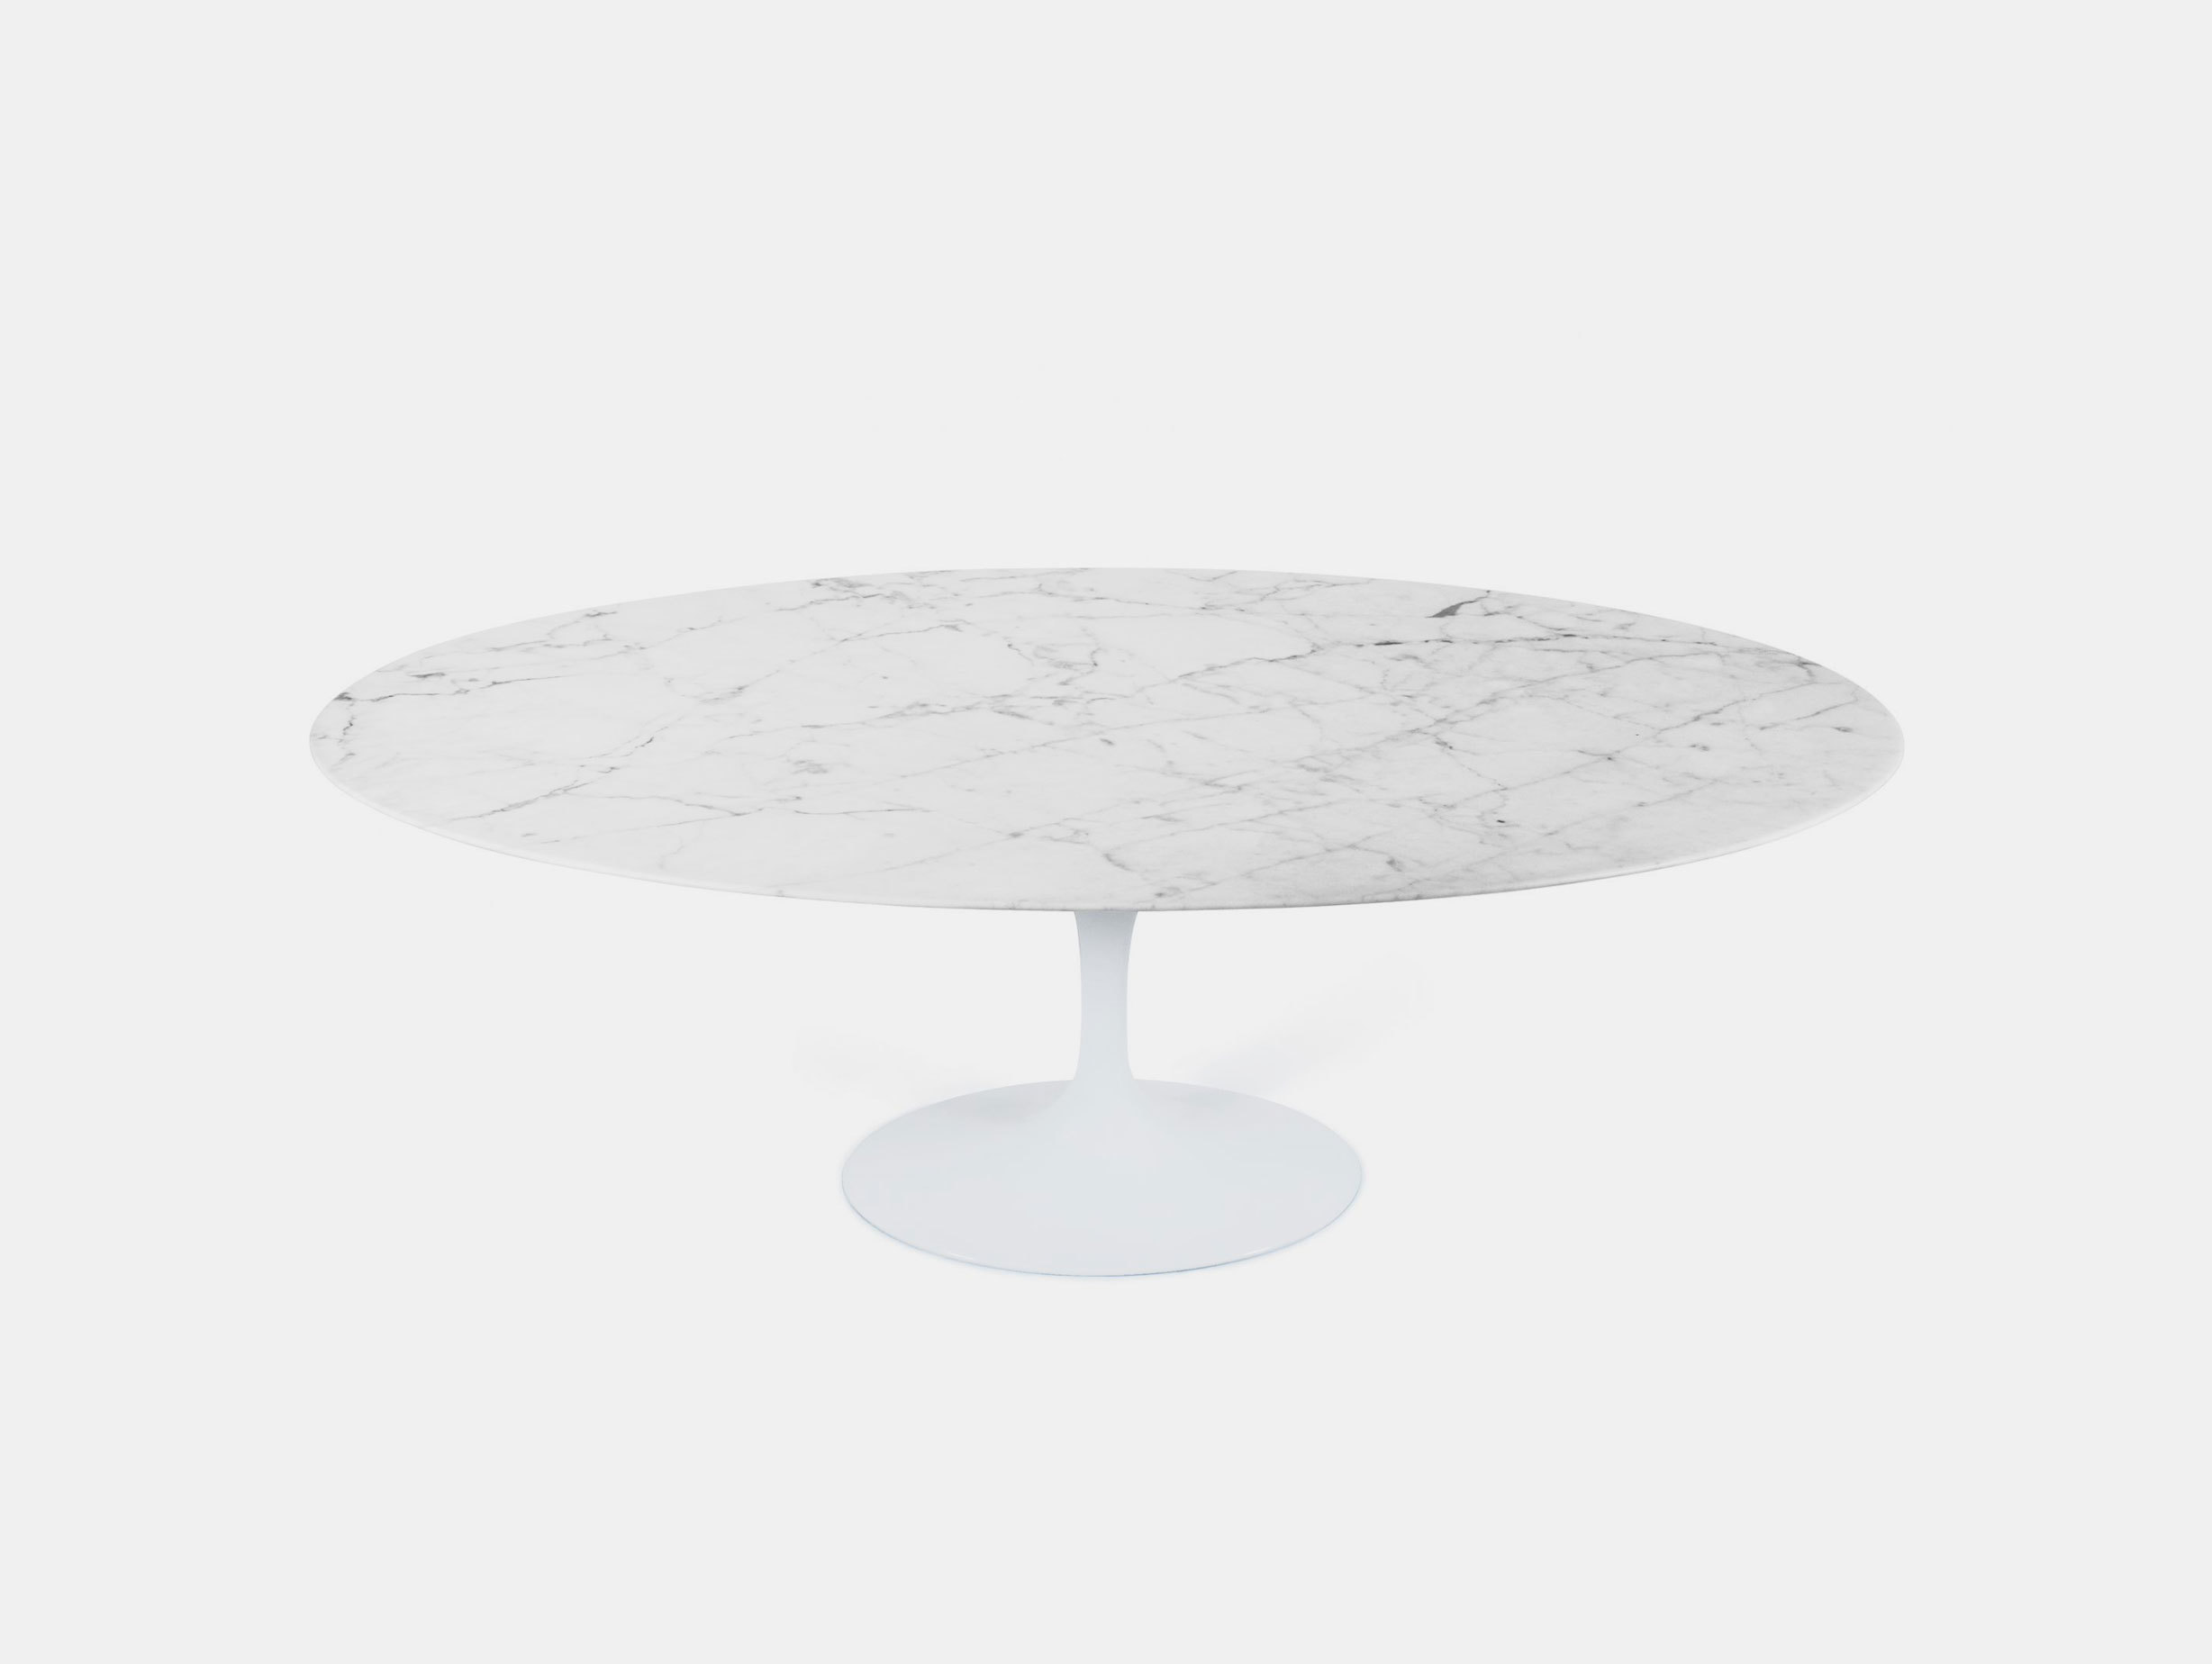 Saarinen Oval Dining Table image 1